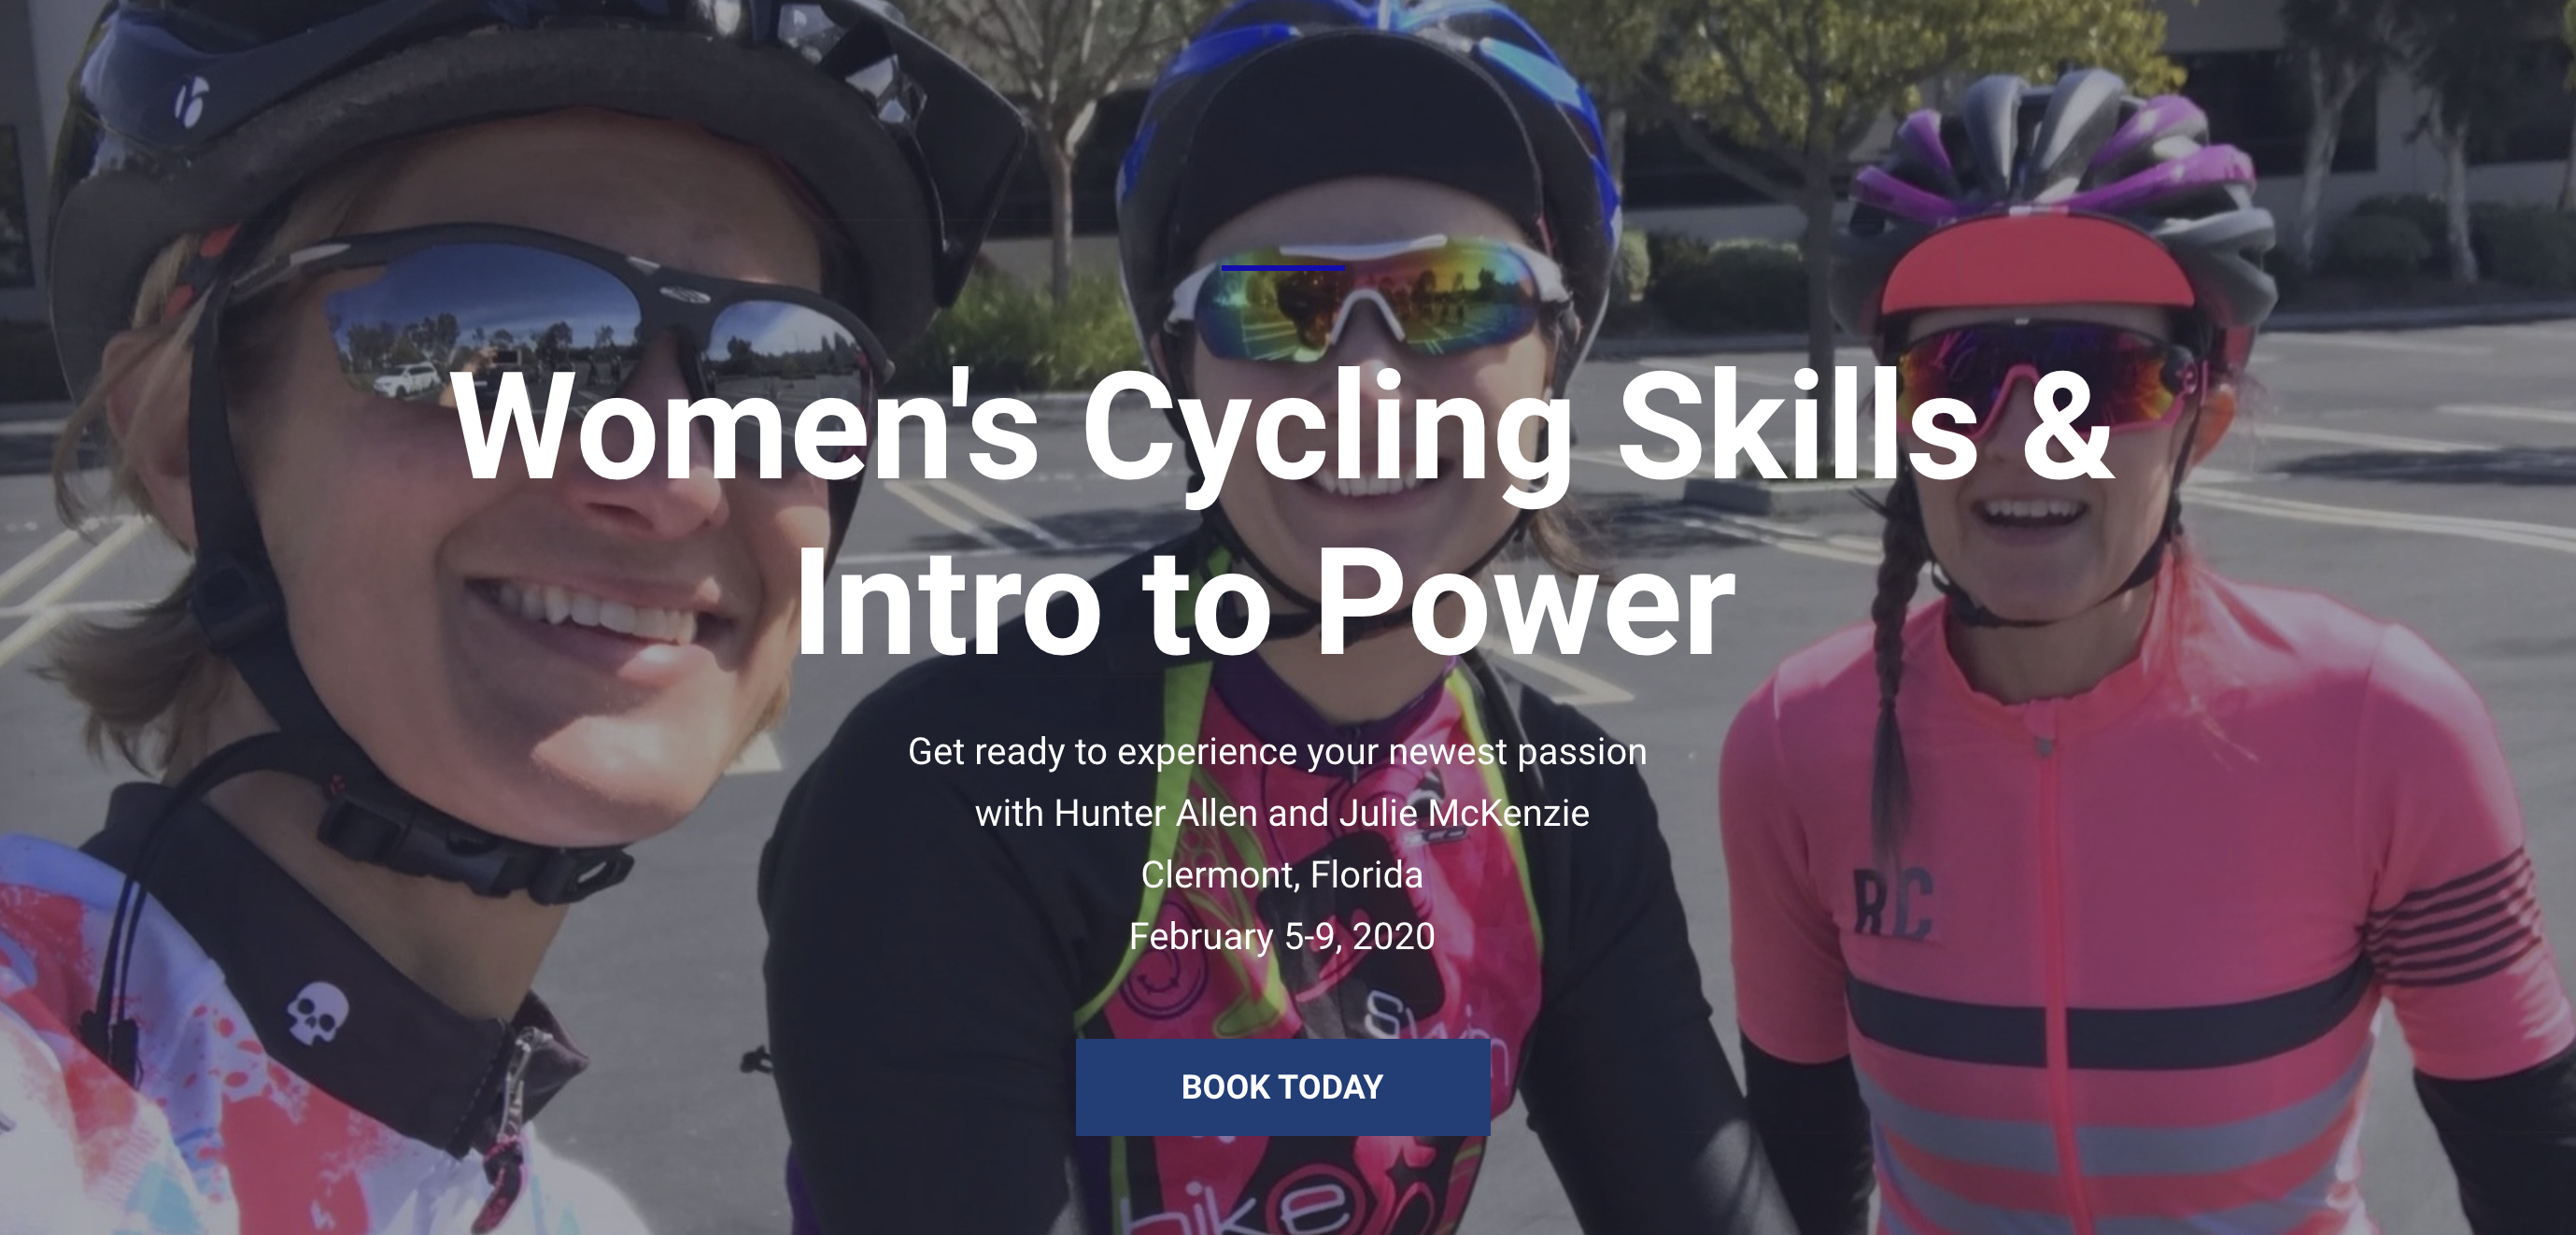 women's cycling camp clermont, FL